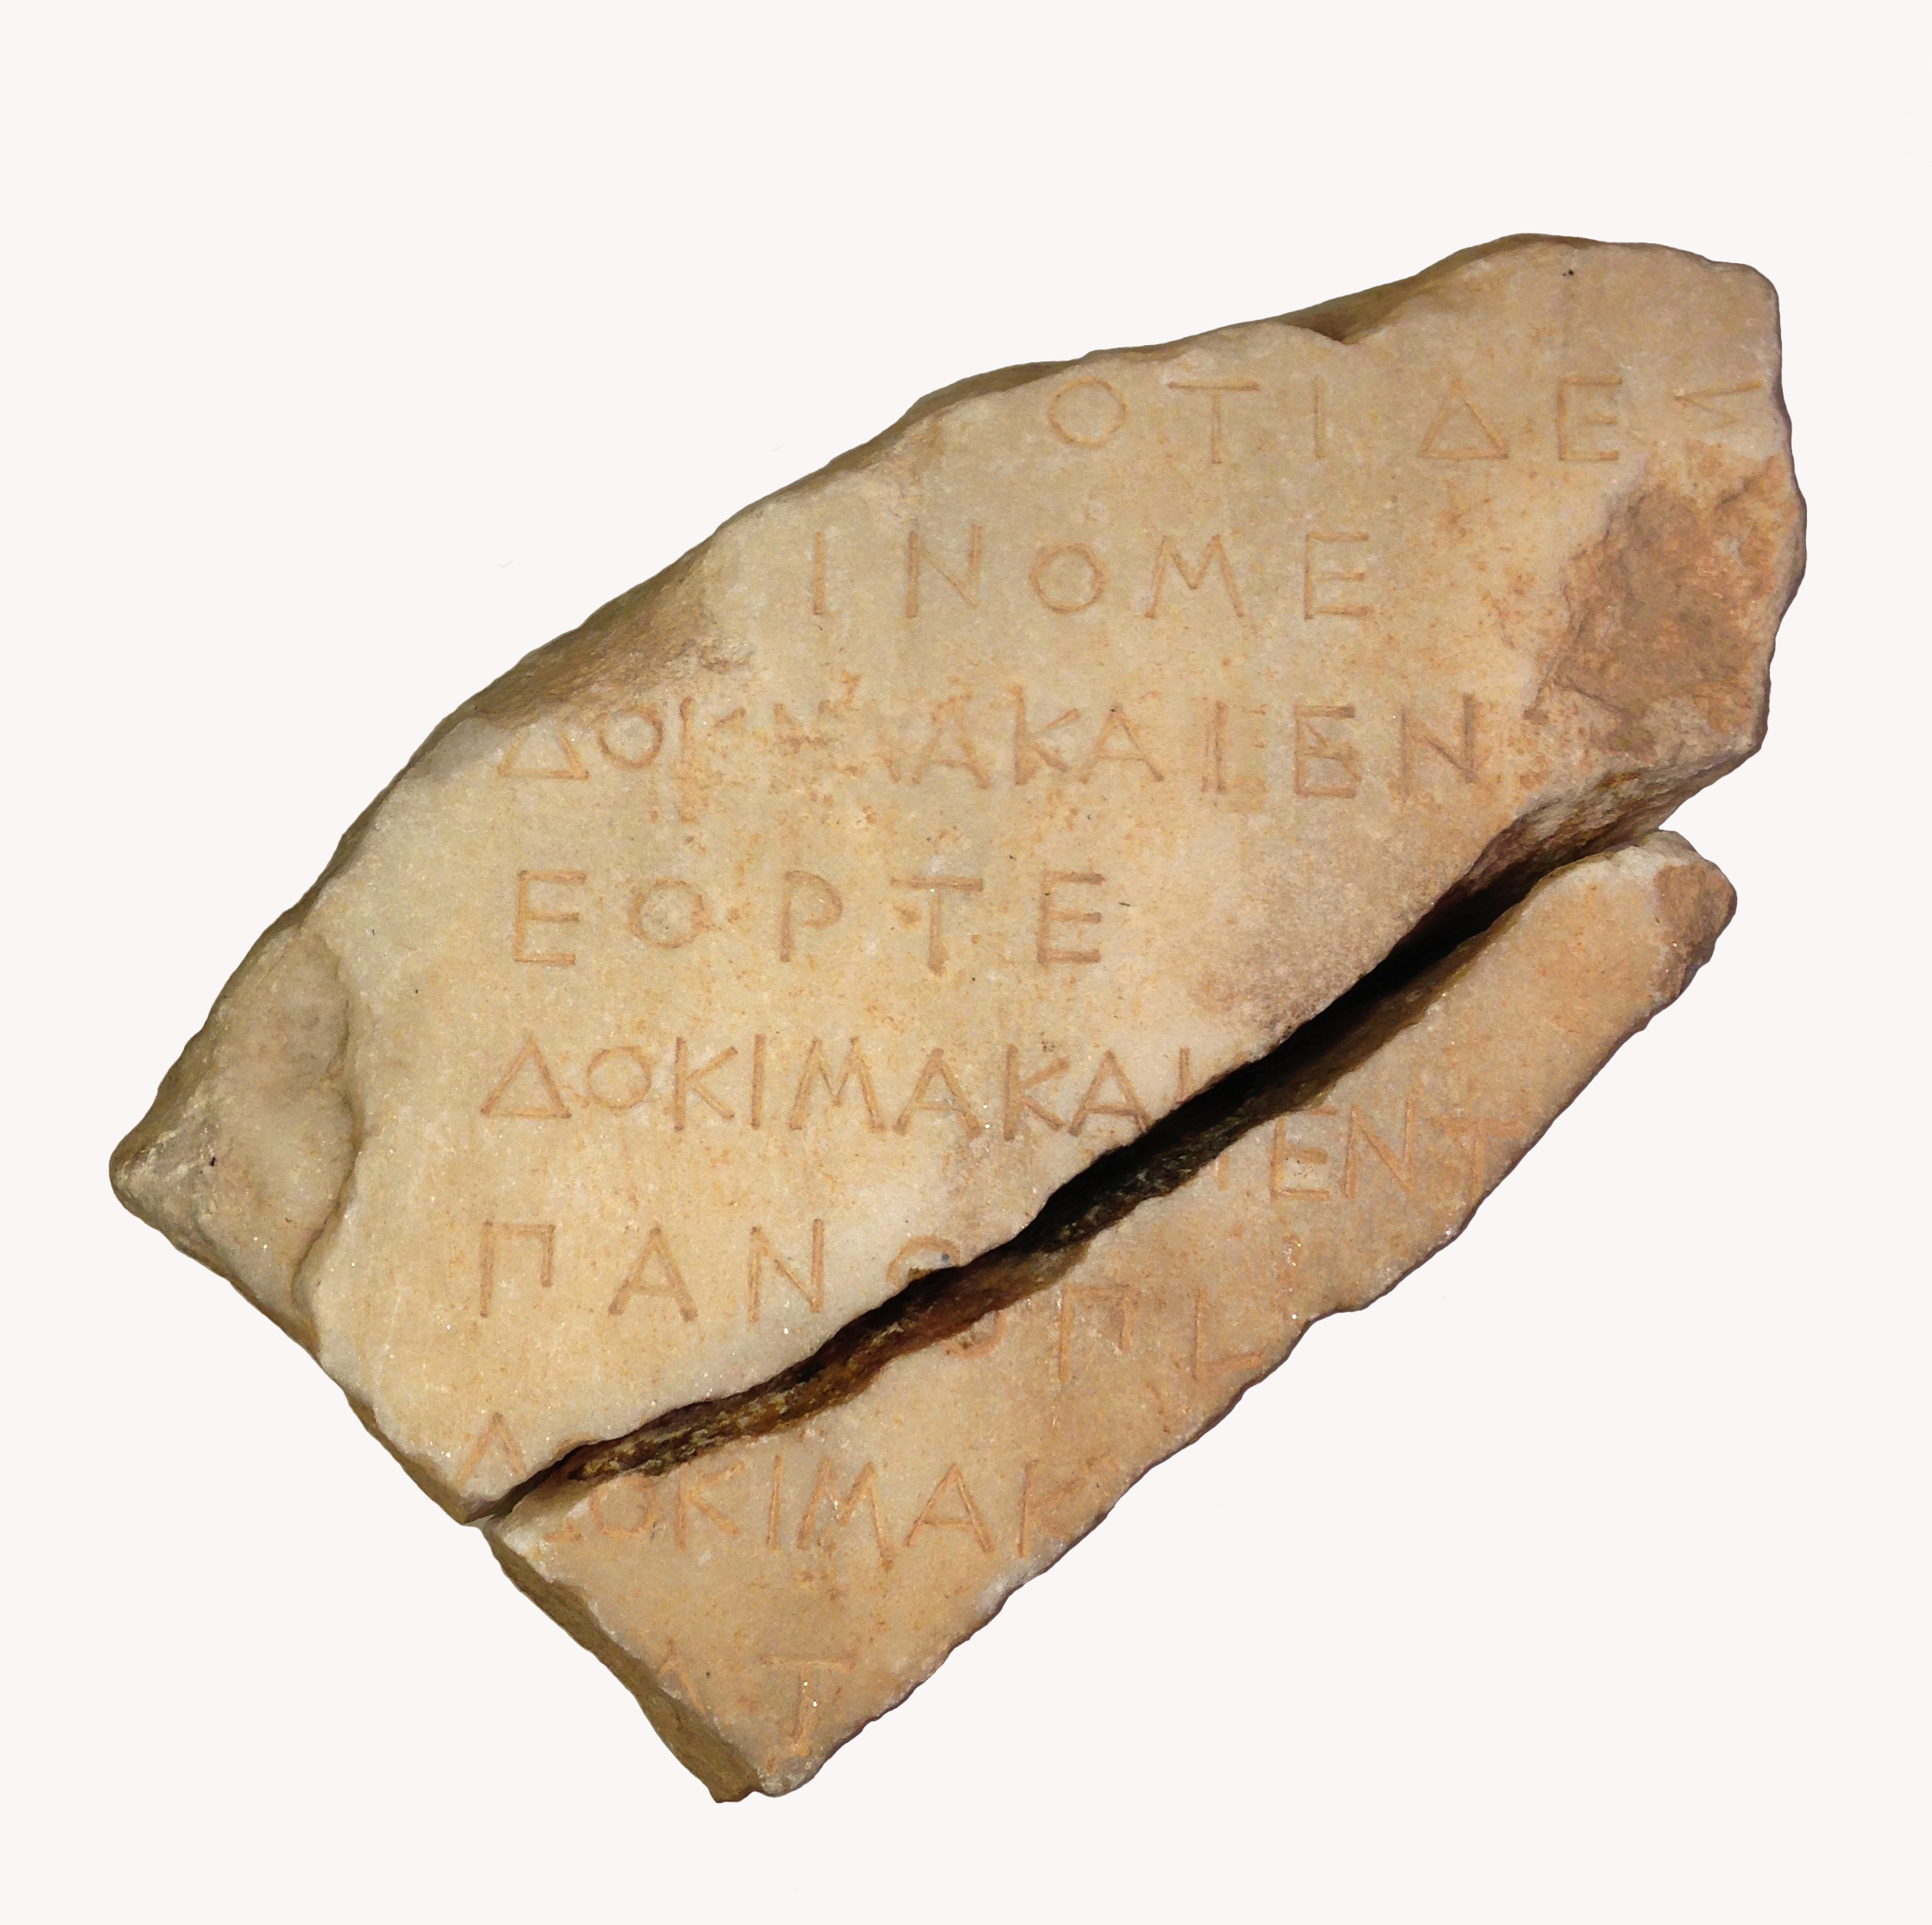 marble_inscription